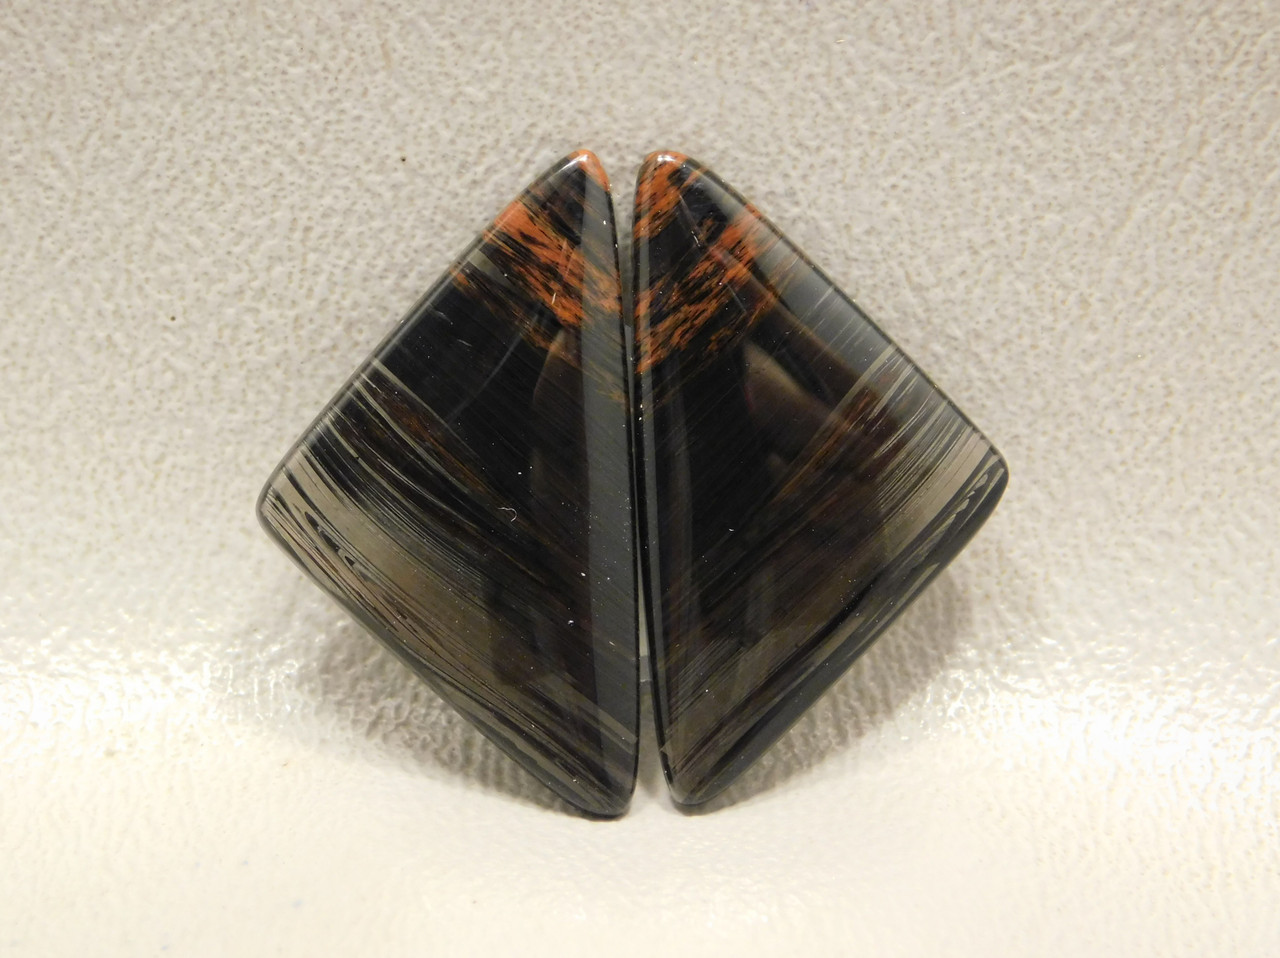 Mahogany Obsidian Matched Pairs Cabochons for Earrings #14